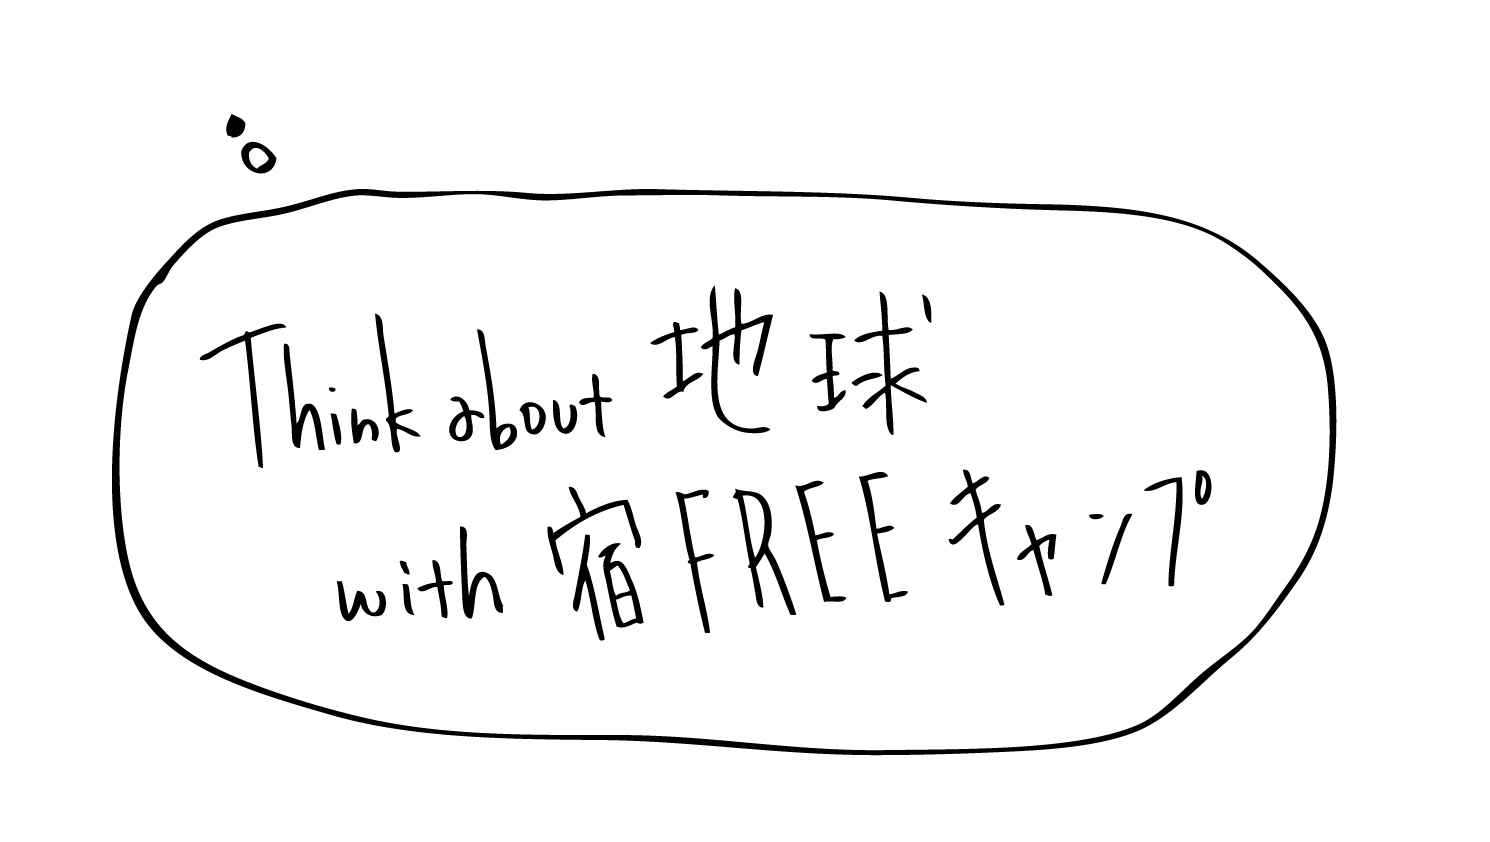 Think about 地球 with 宿FREEキャンプ